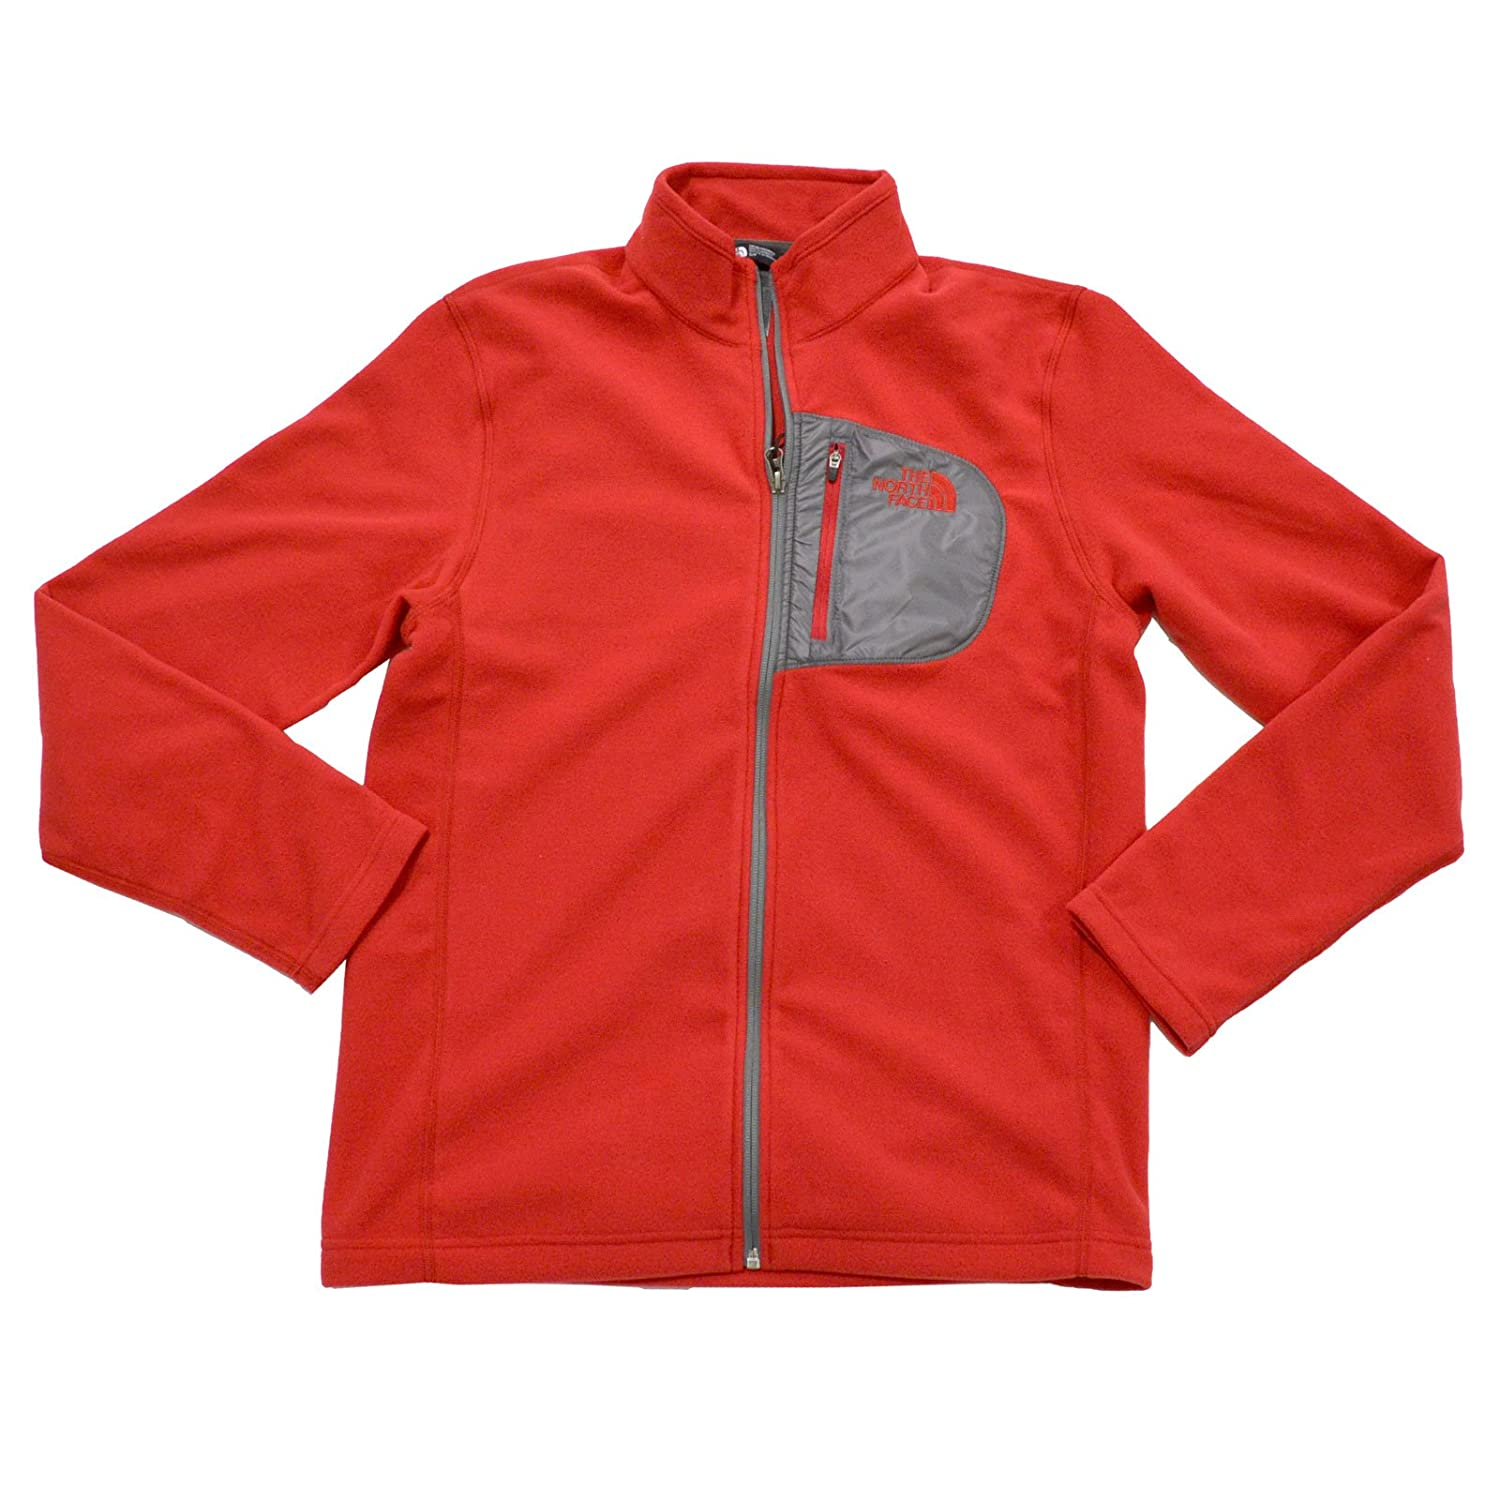 on sale The North Face Mens Tinder Fleece Jacket - plancap.com.ar 1332b137f